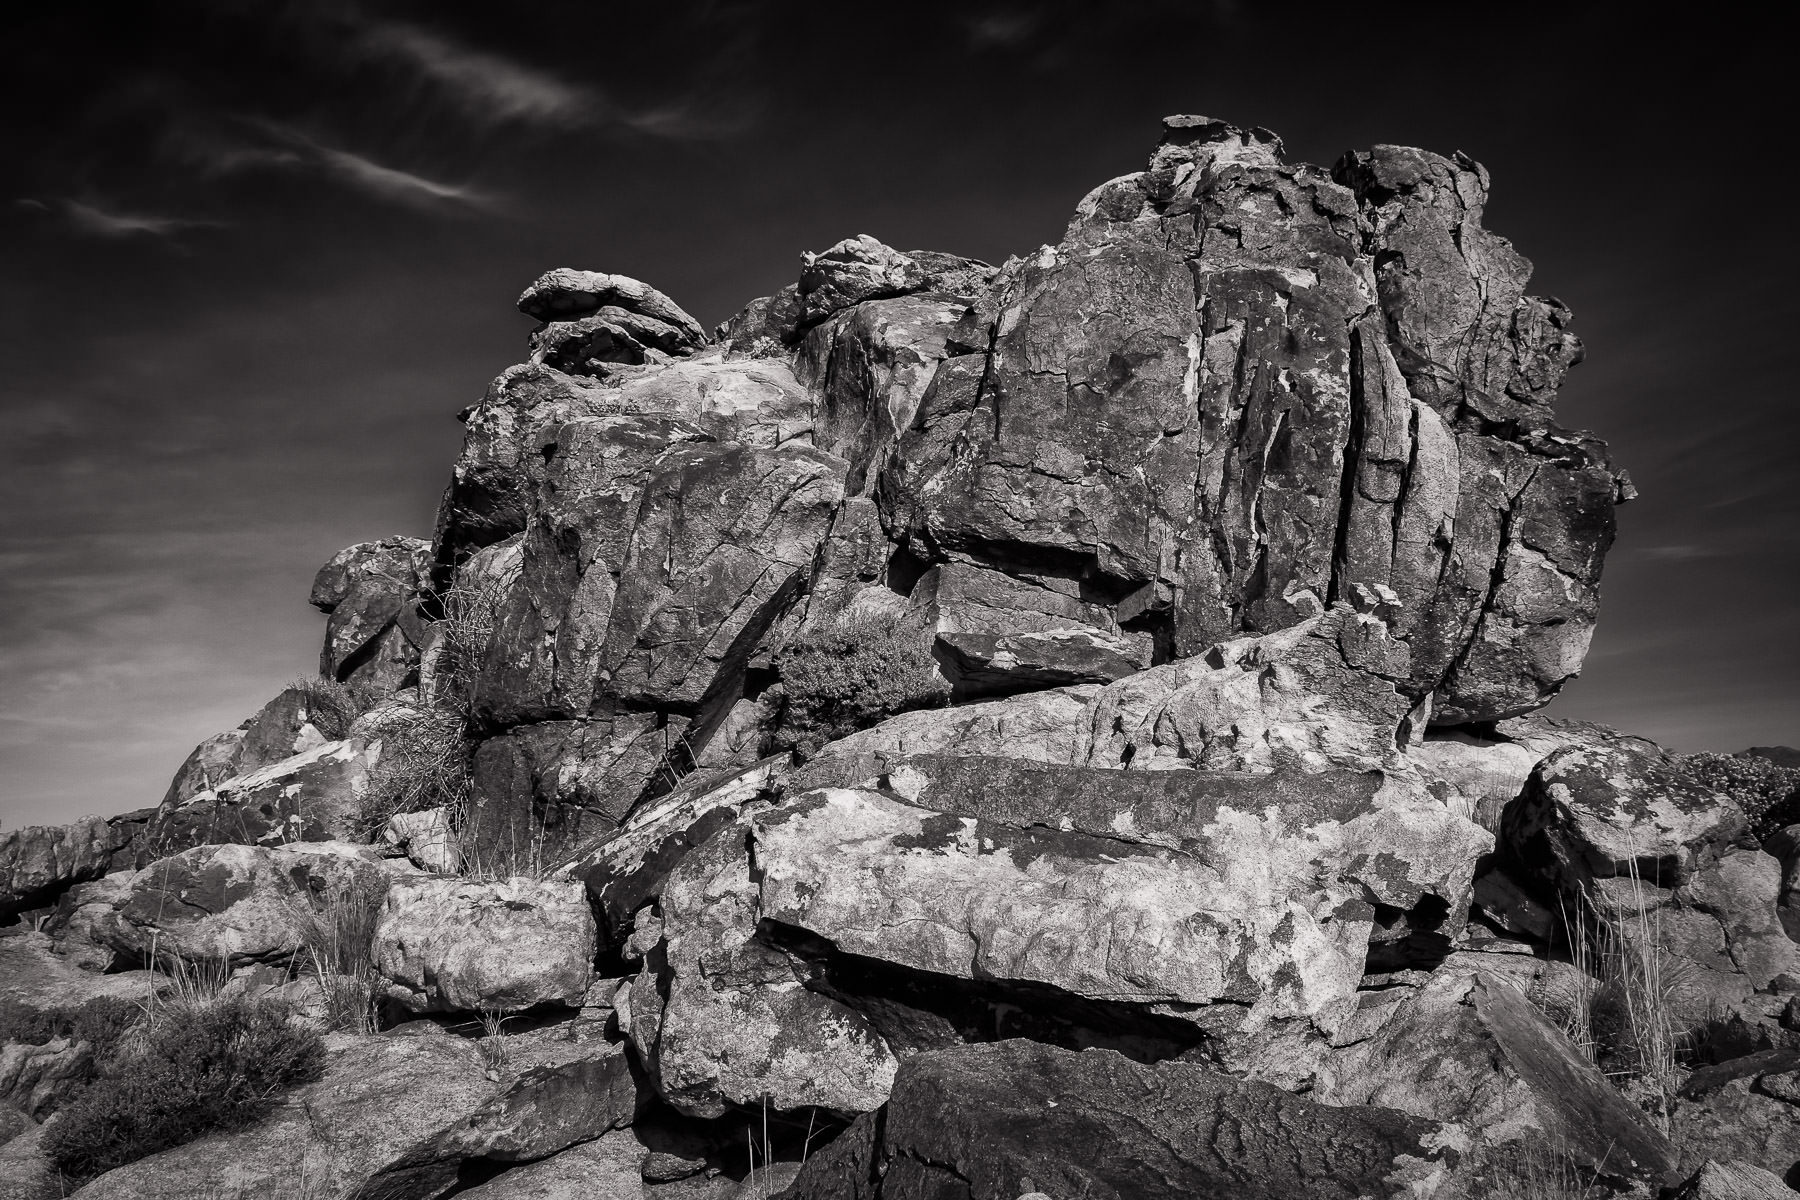 A rocky outcropping at the Mojave National Preserve, California.